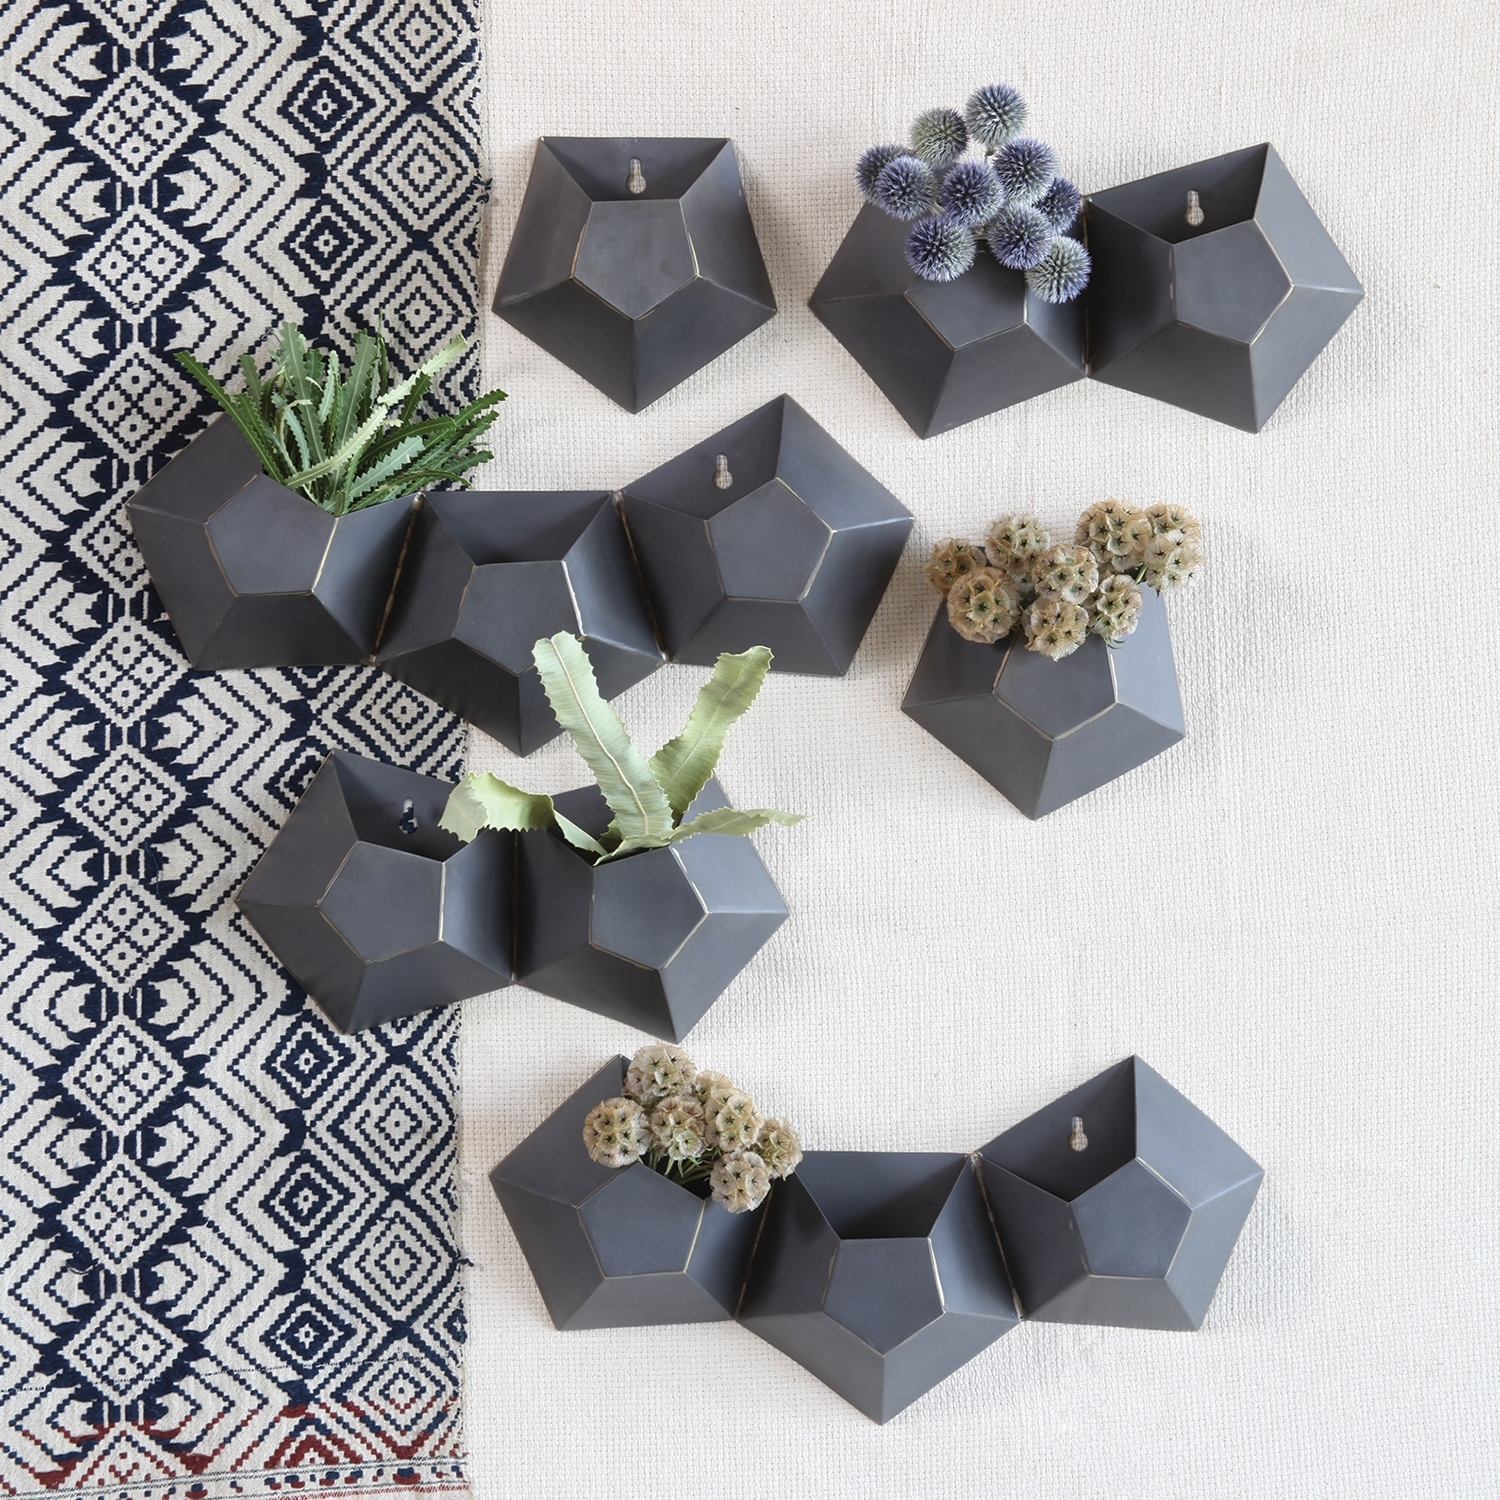 Triple Hexagonal Iron Wall Vase by HomArt - Seven Colonial on Iron Wall Vases id=82591